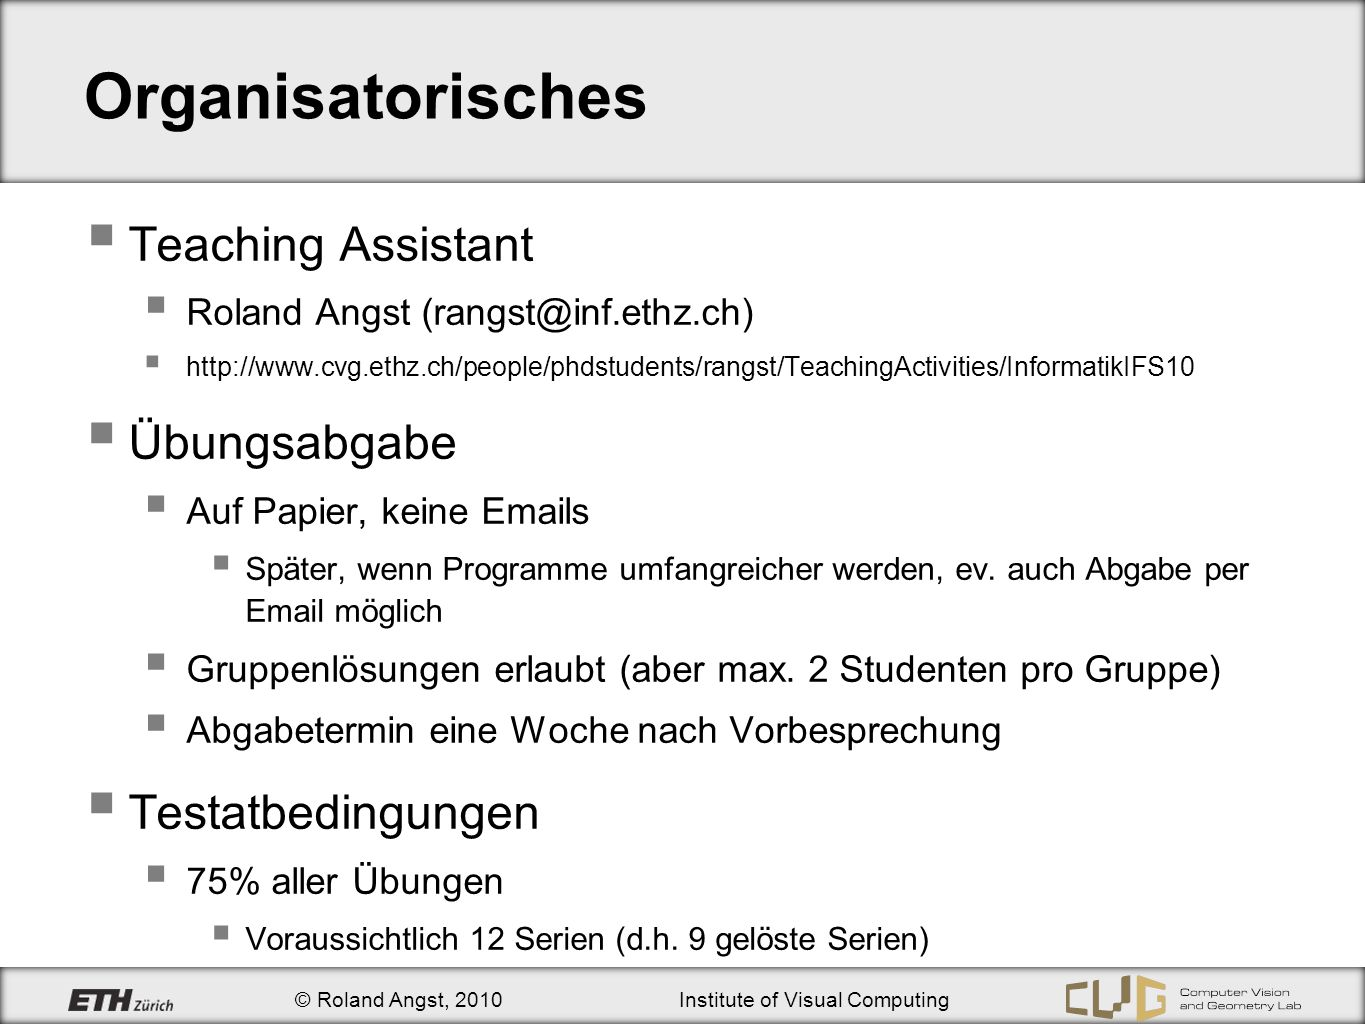 © Roland Angst, 2010Institute of Visual Computing Organisatorisches Teaching Assistant Roland Angst (rangst@inf.ethz.ch) http://www.cvg.ethz.ch/people/phdstudents/rangst/TeachingActivities/InformatikIFS10 Übungsabgabe Auf Papier, keine Emails Später, wenn Programme umfangreicher werden, ev.